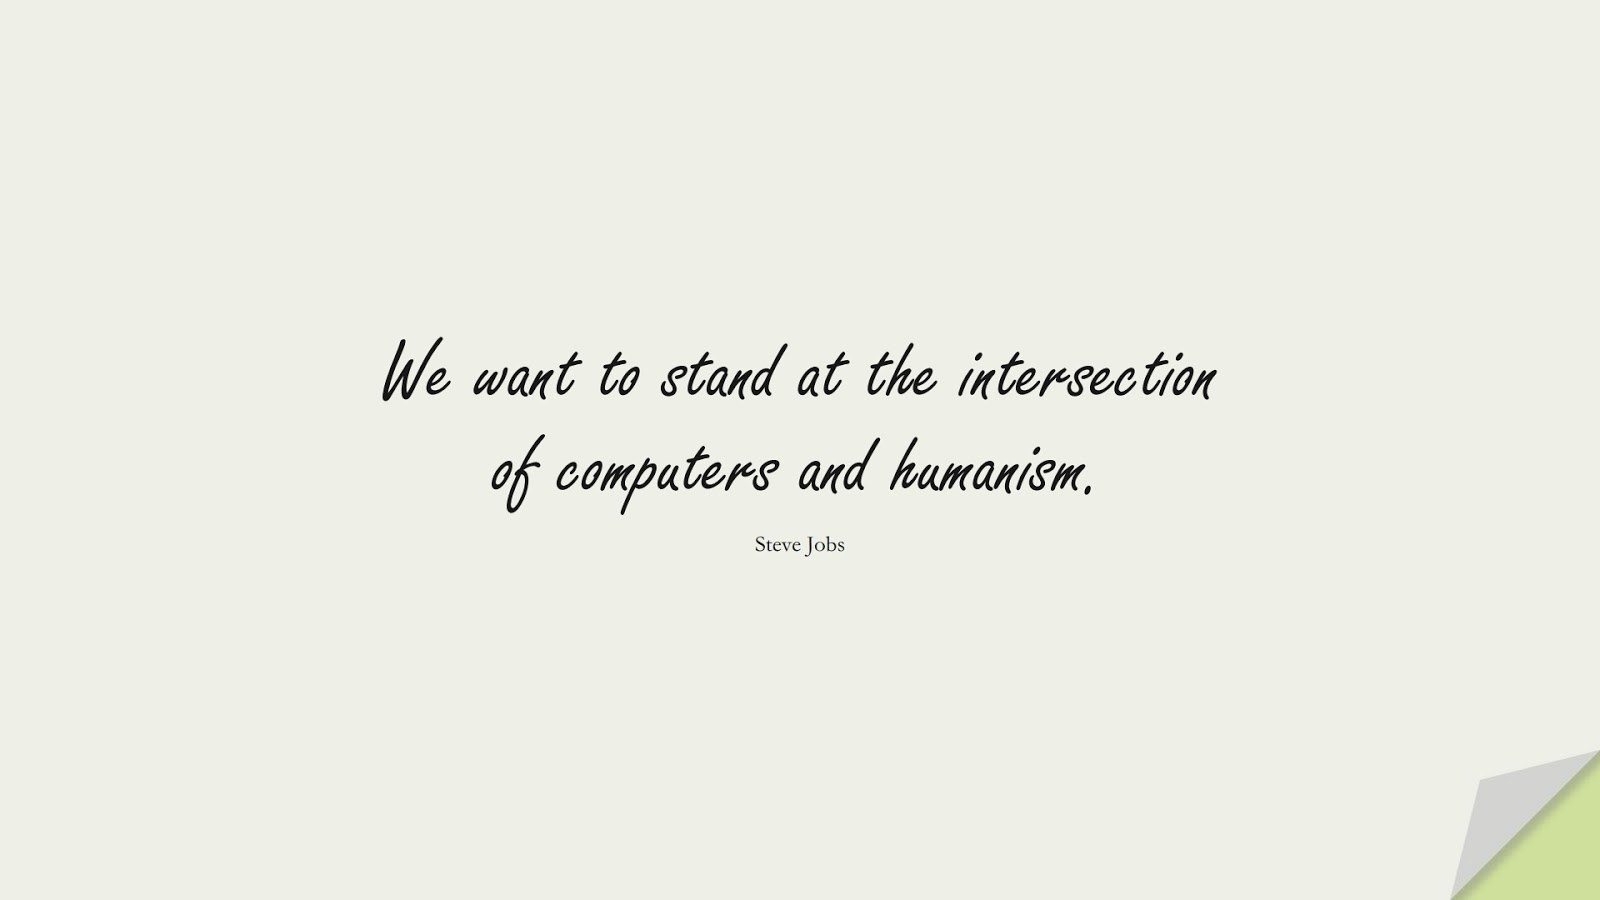 We want to stand at the intersection of computers and humanism. (Steve Jobs);  #SteveJobsQuotes